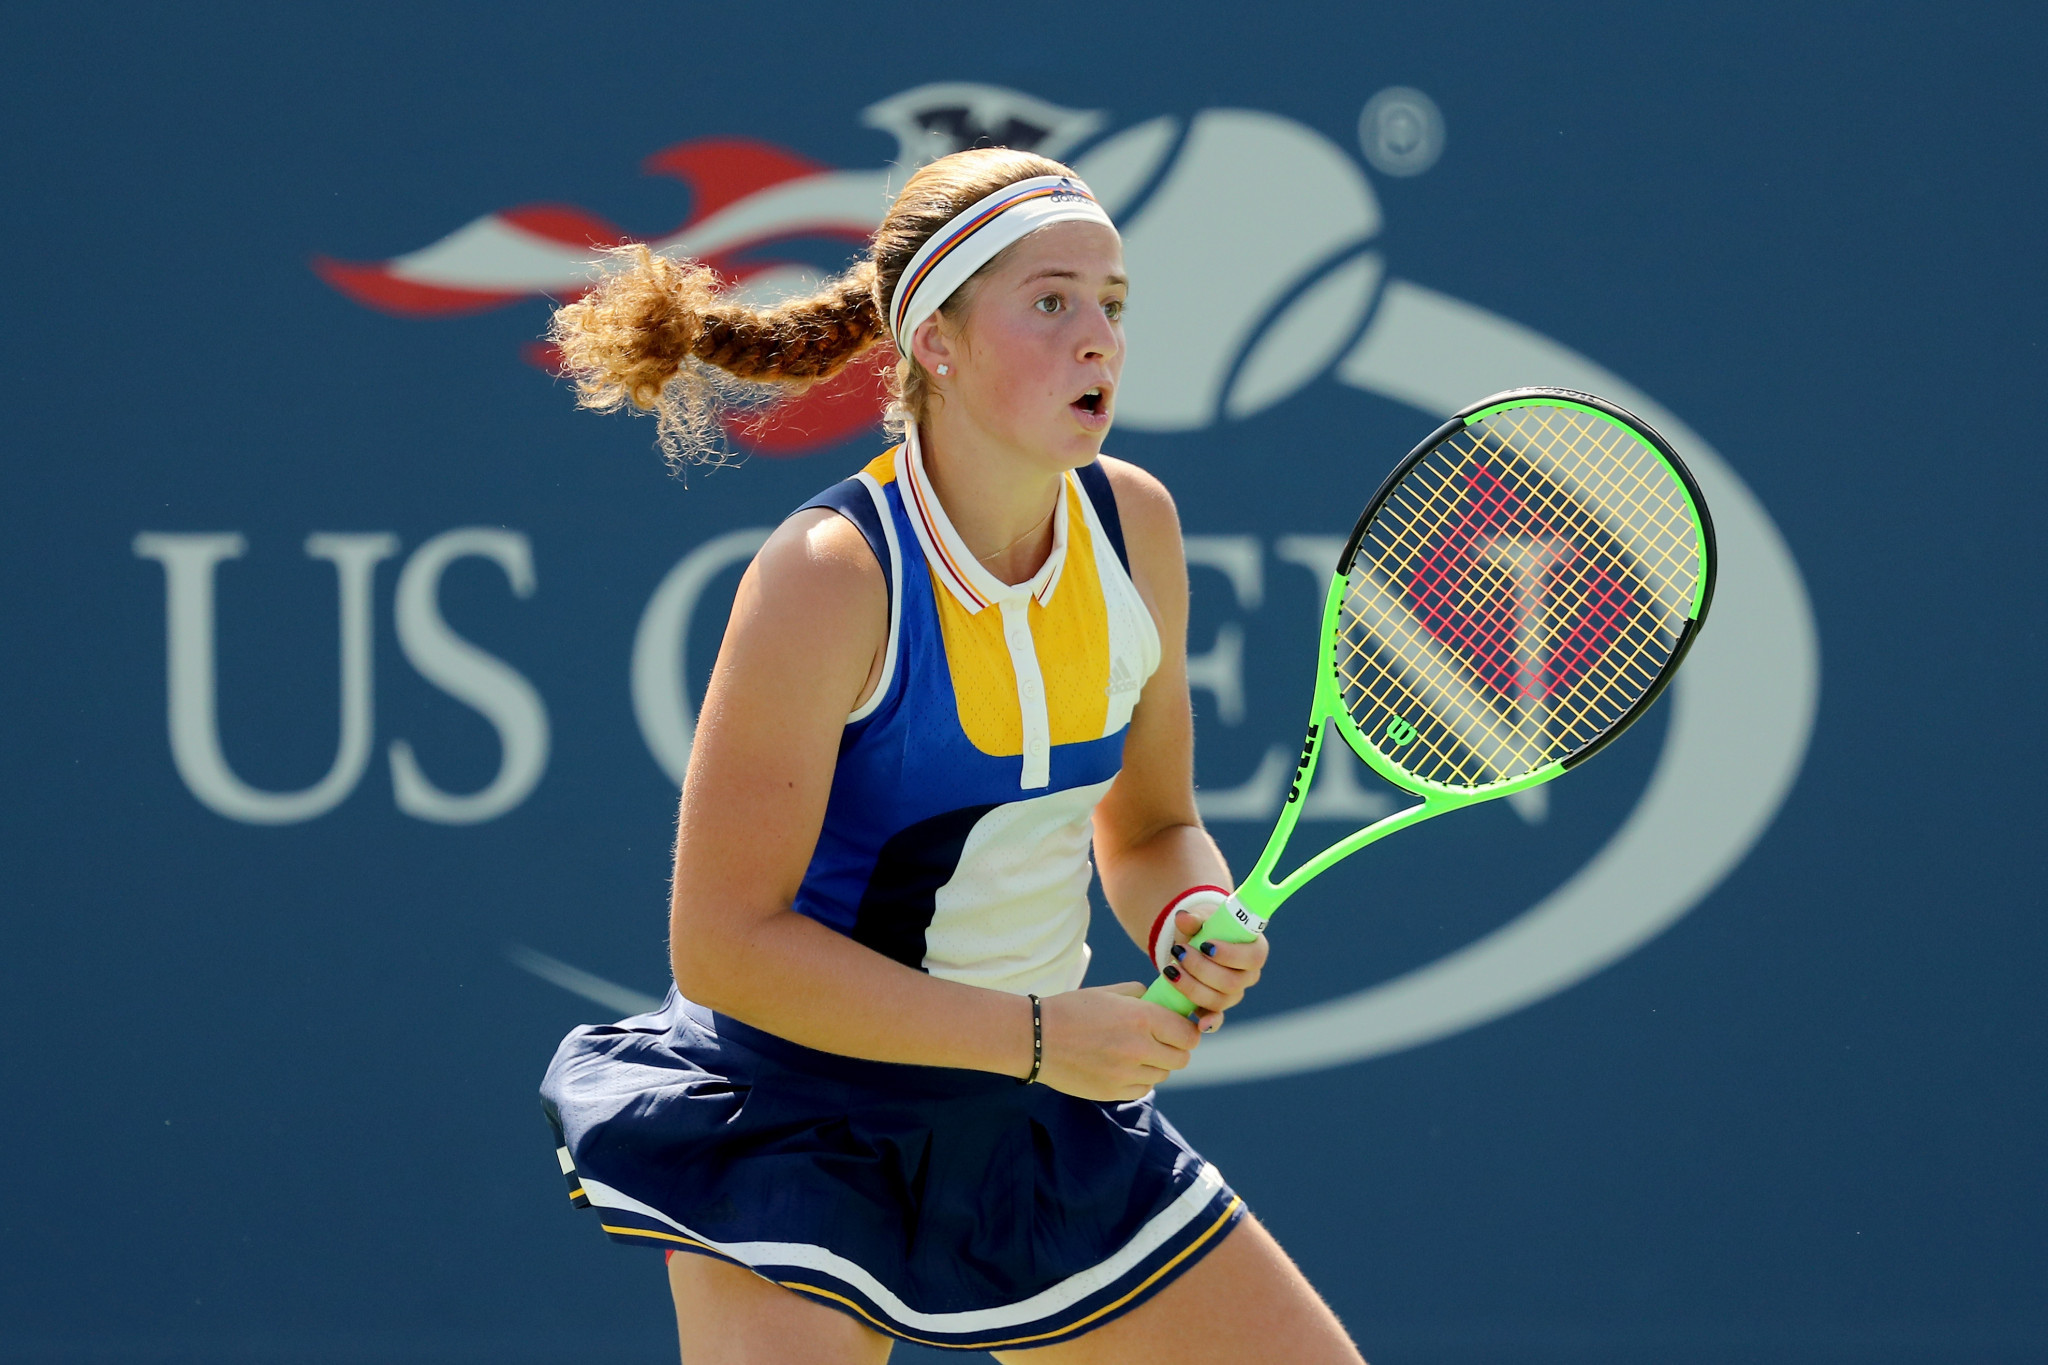 Latvia's Jelena Ostapenko has withdrawn from the US Open because of concerns surrounding coronavirus ©Getty Images